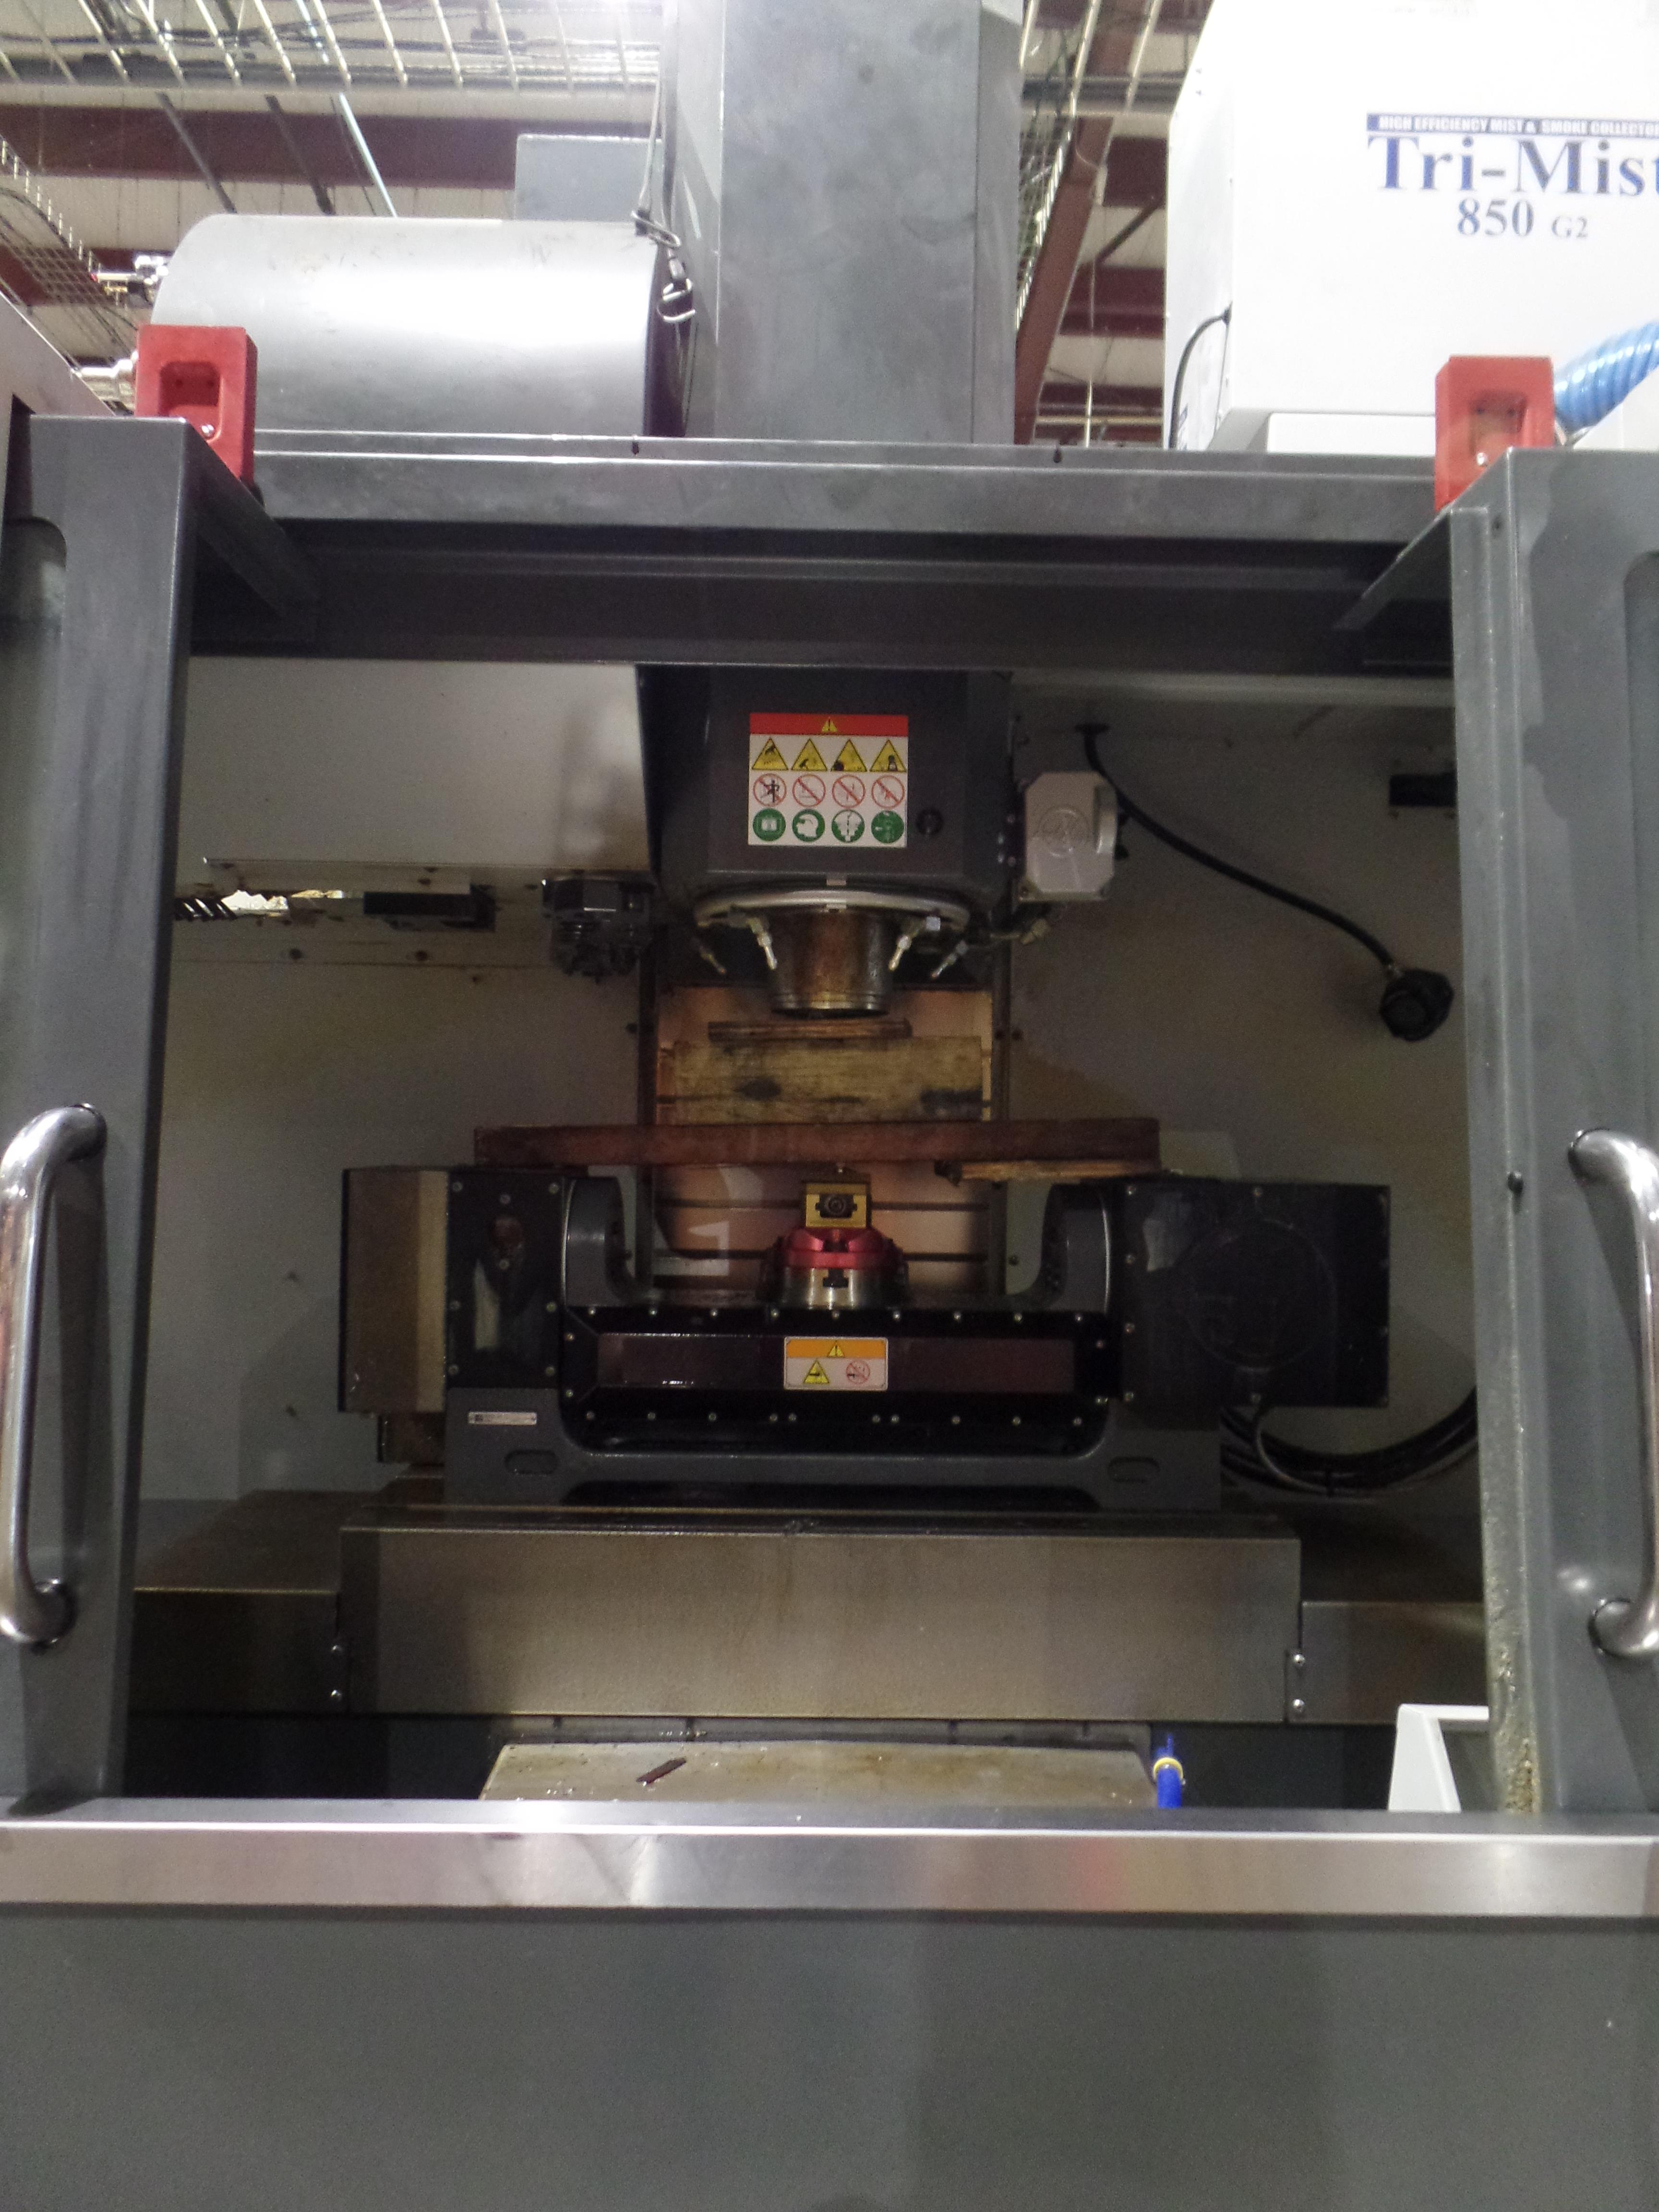 Haas VF-2 TR 5-Axis with Trunion Vertical Machining Center, Cat 40, 24 ATC, New 2017 - Image 5 of 9